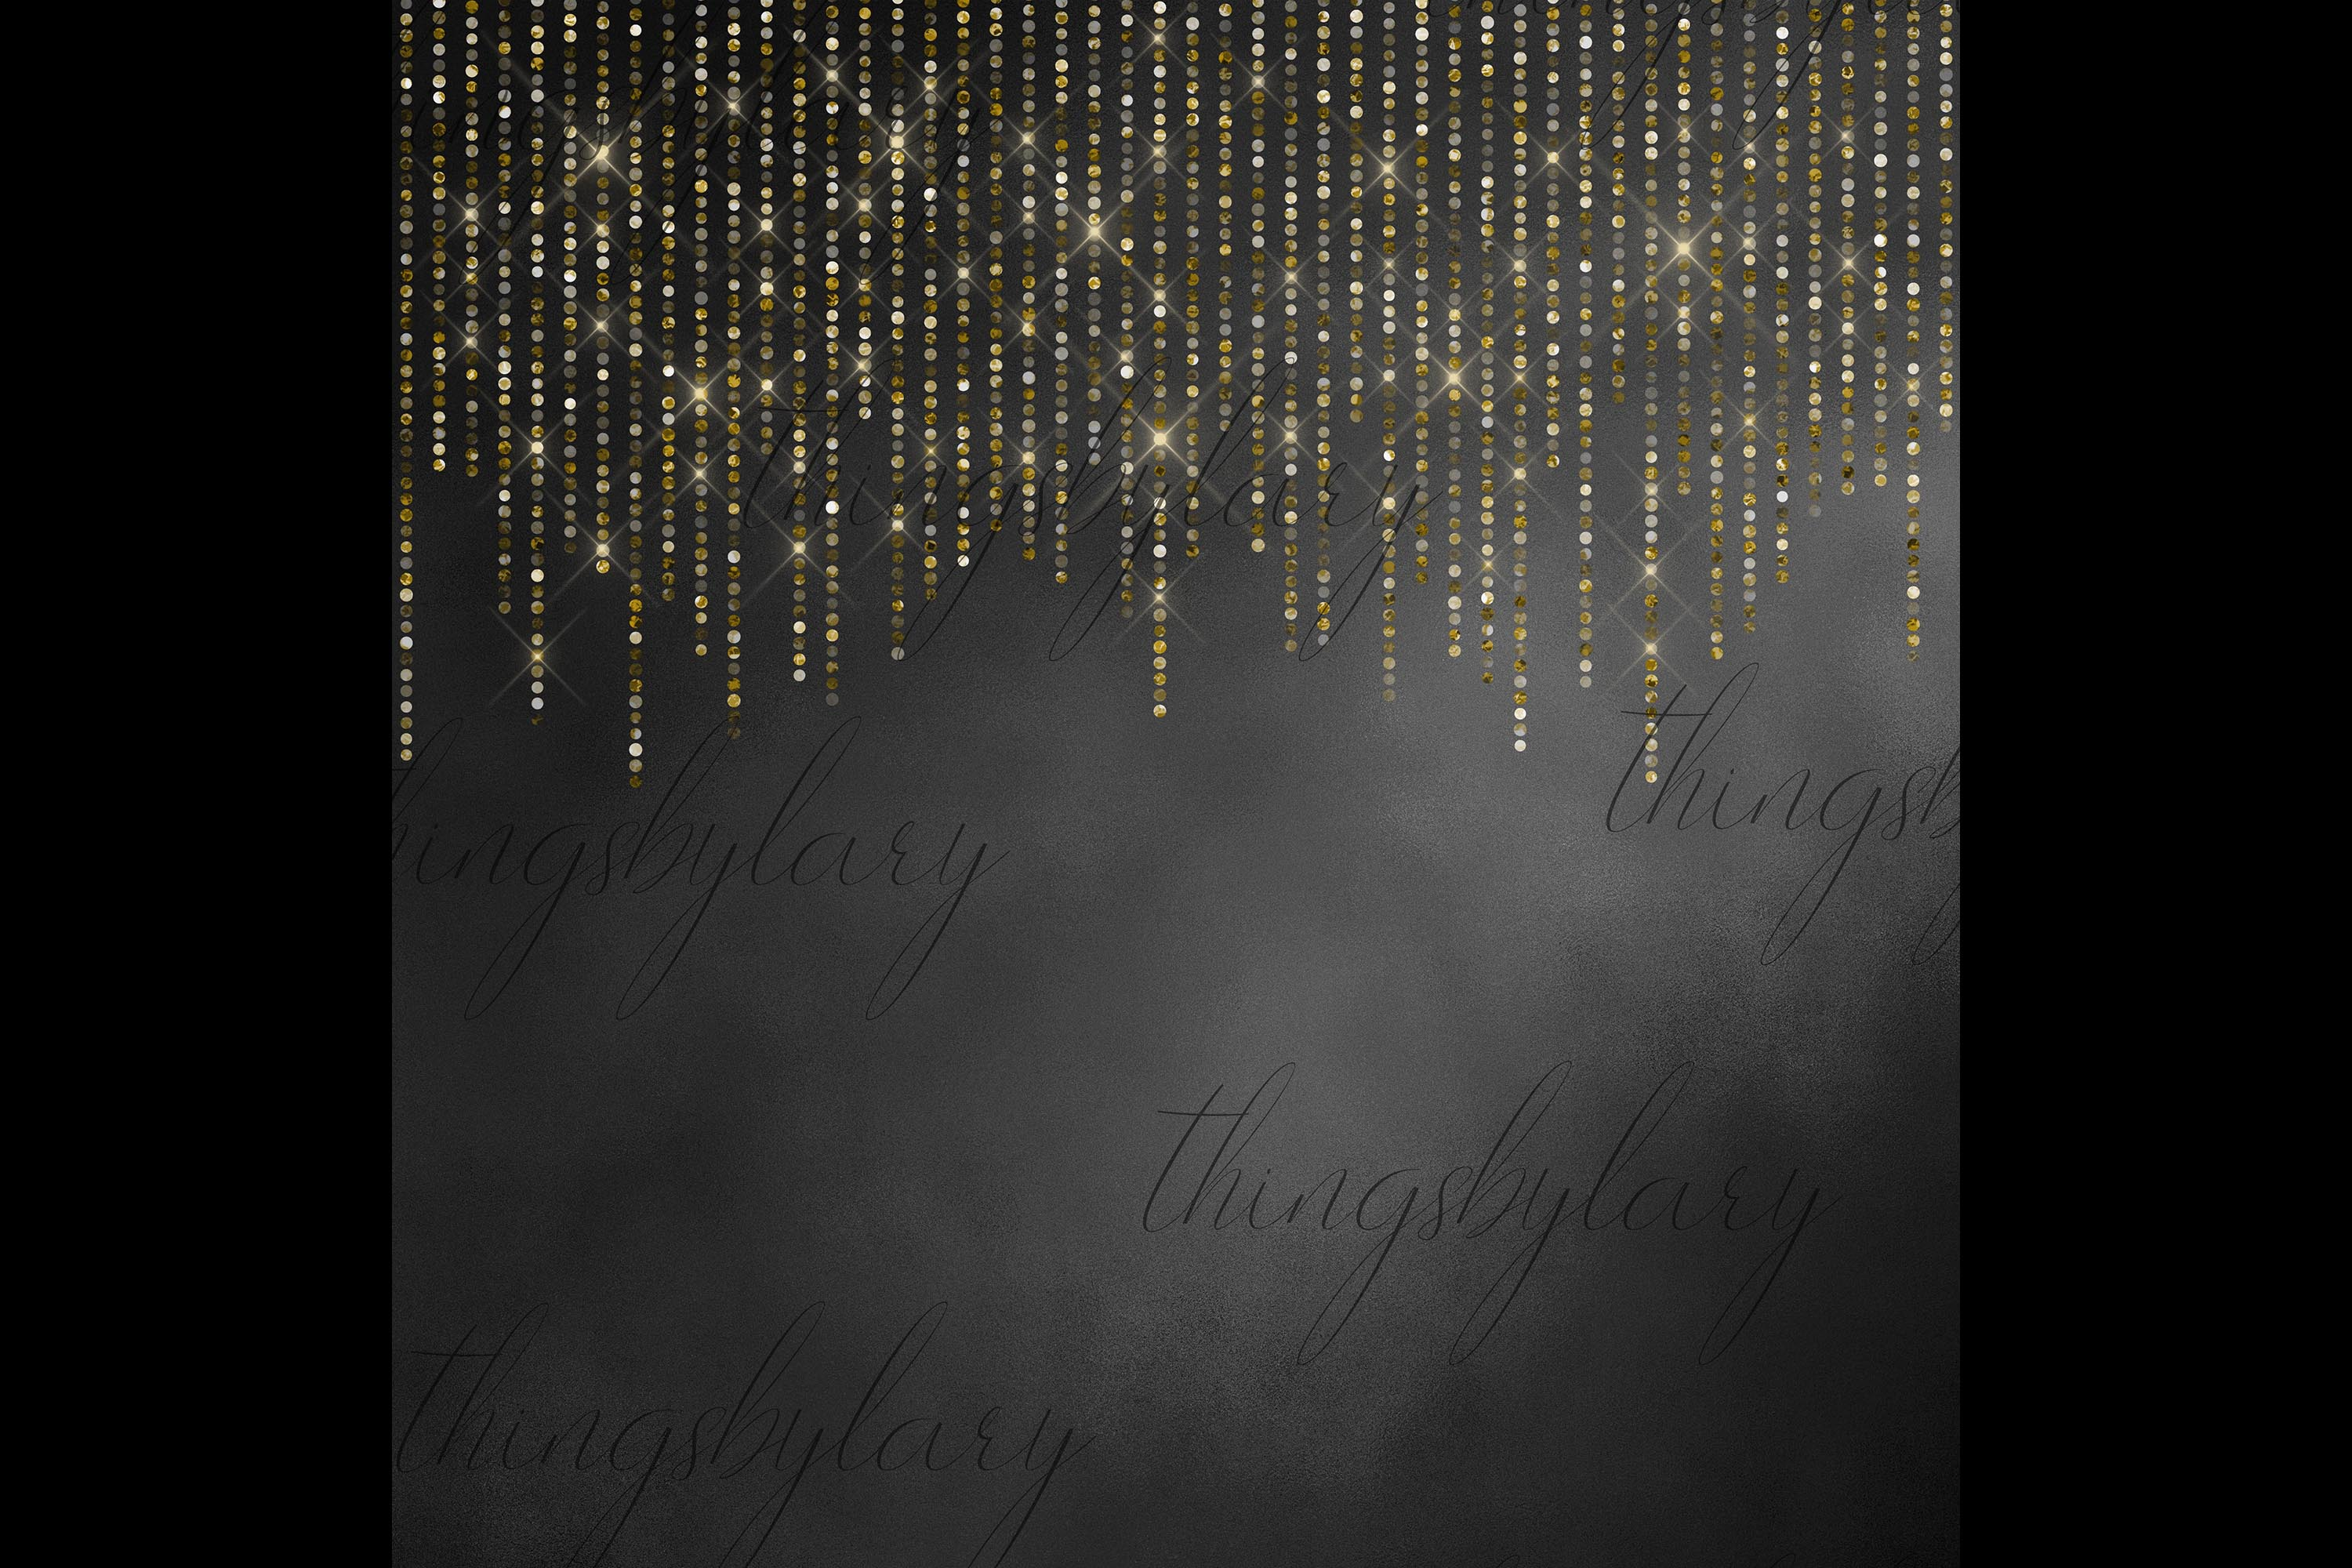 100 Shimmering Glitter Curtain Border Overlay Digital Images example image 3